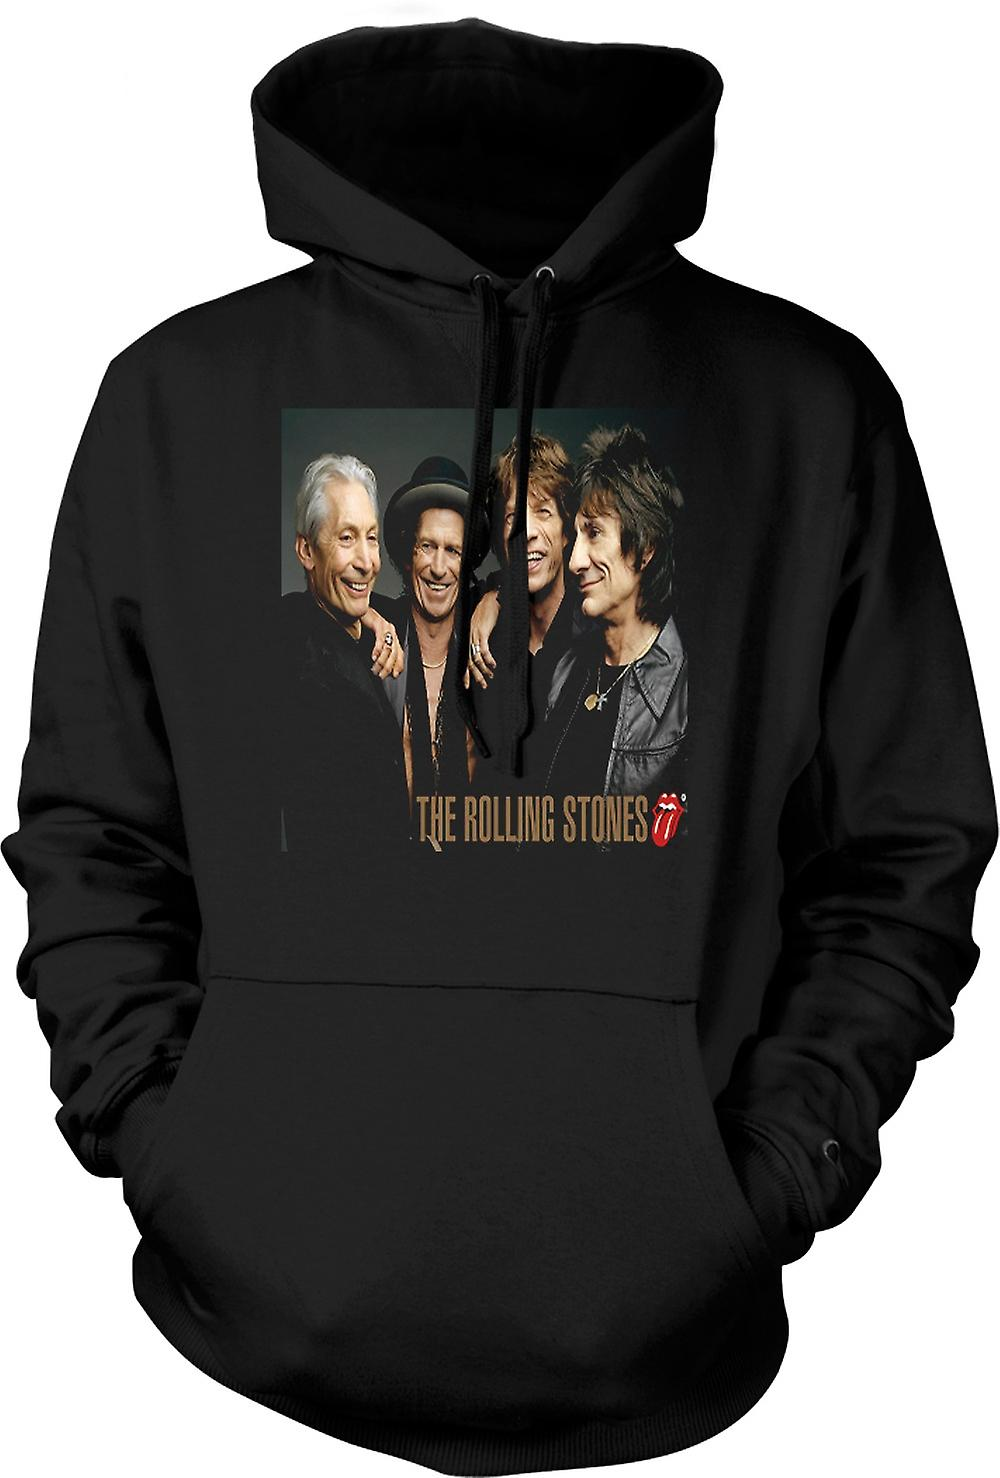 Mens Hoodie - The Rolling Stones - Band Portrait - Lips